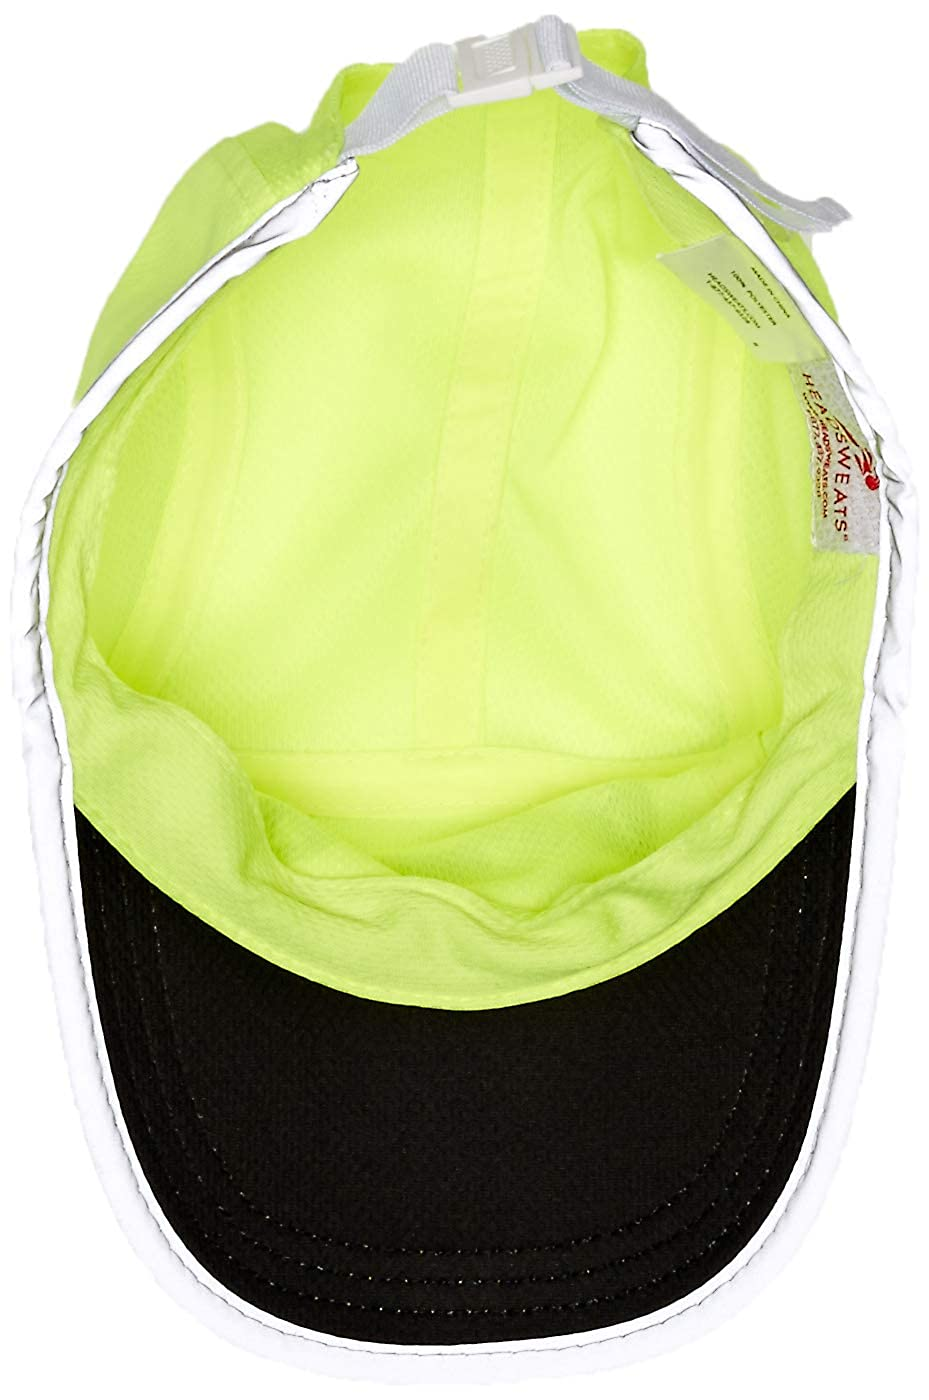 IMBA Race Hat Headsweats Performance Race Hat One Size High Visibility Yellow Reflective